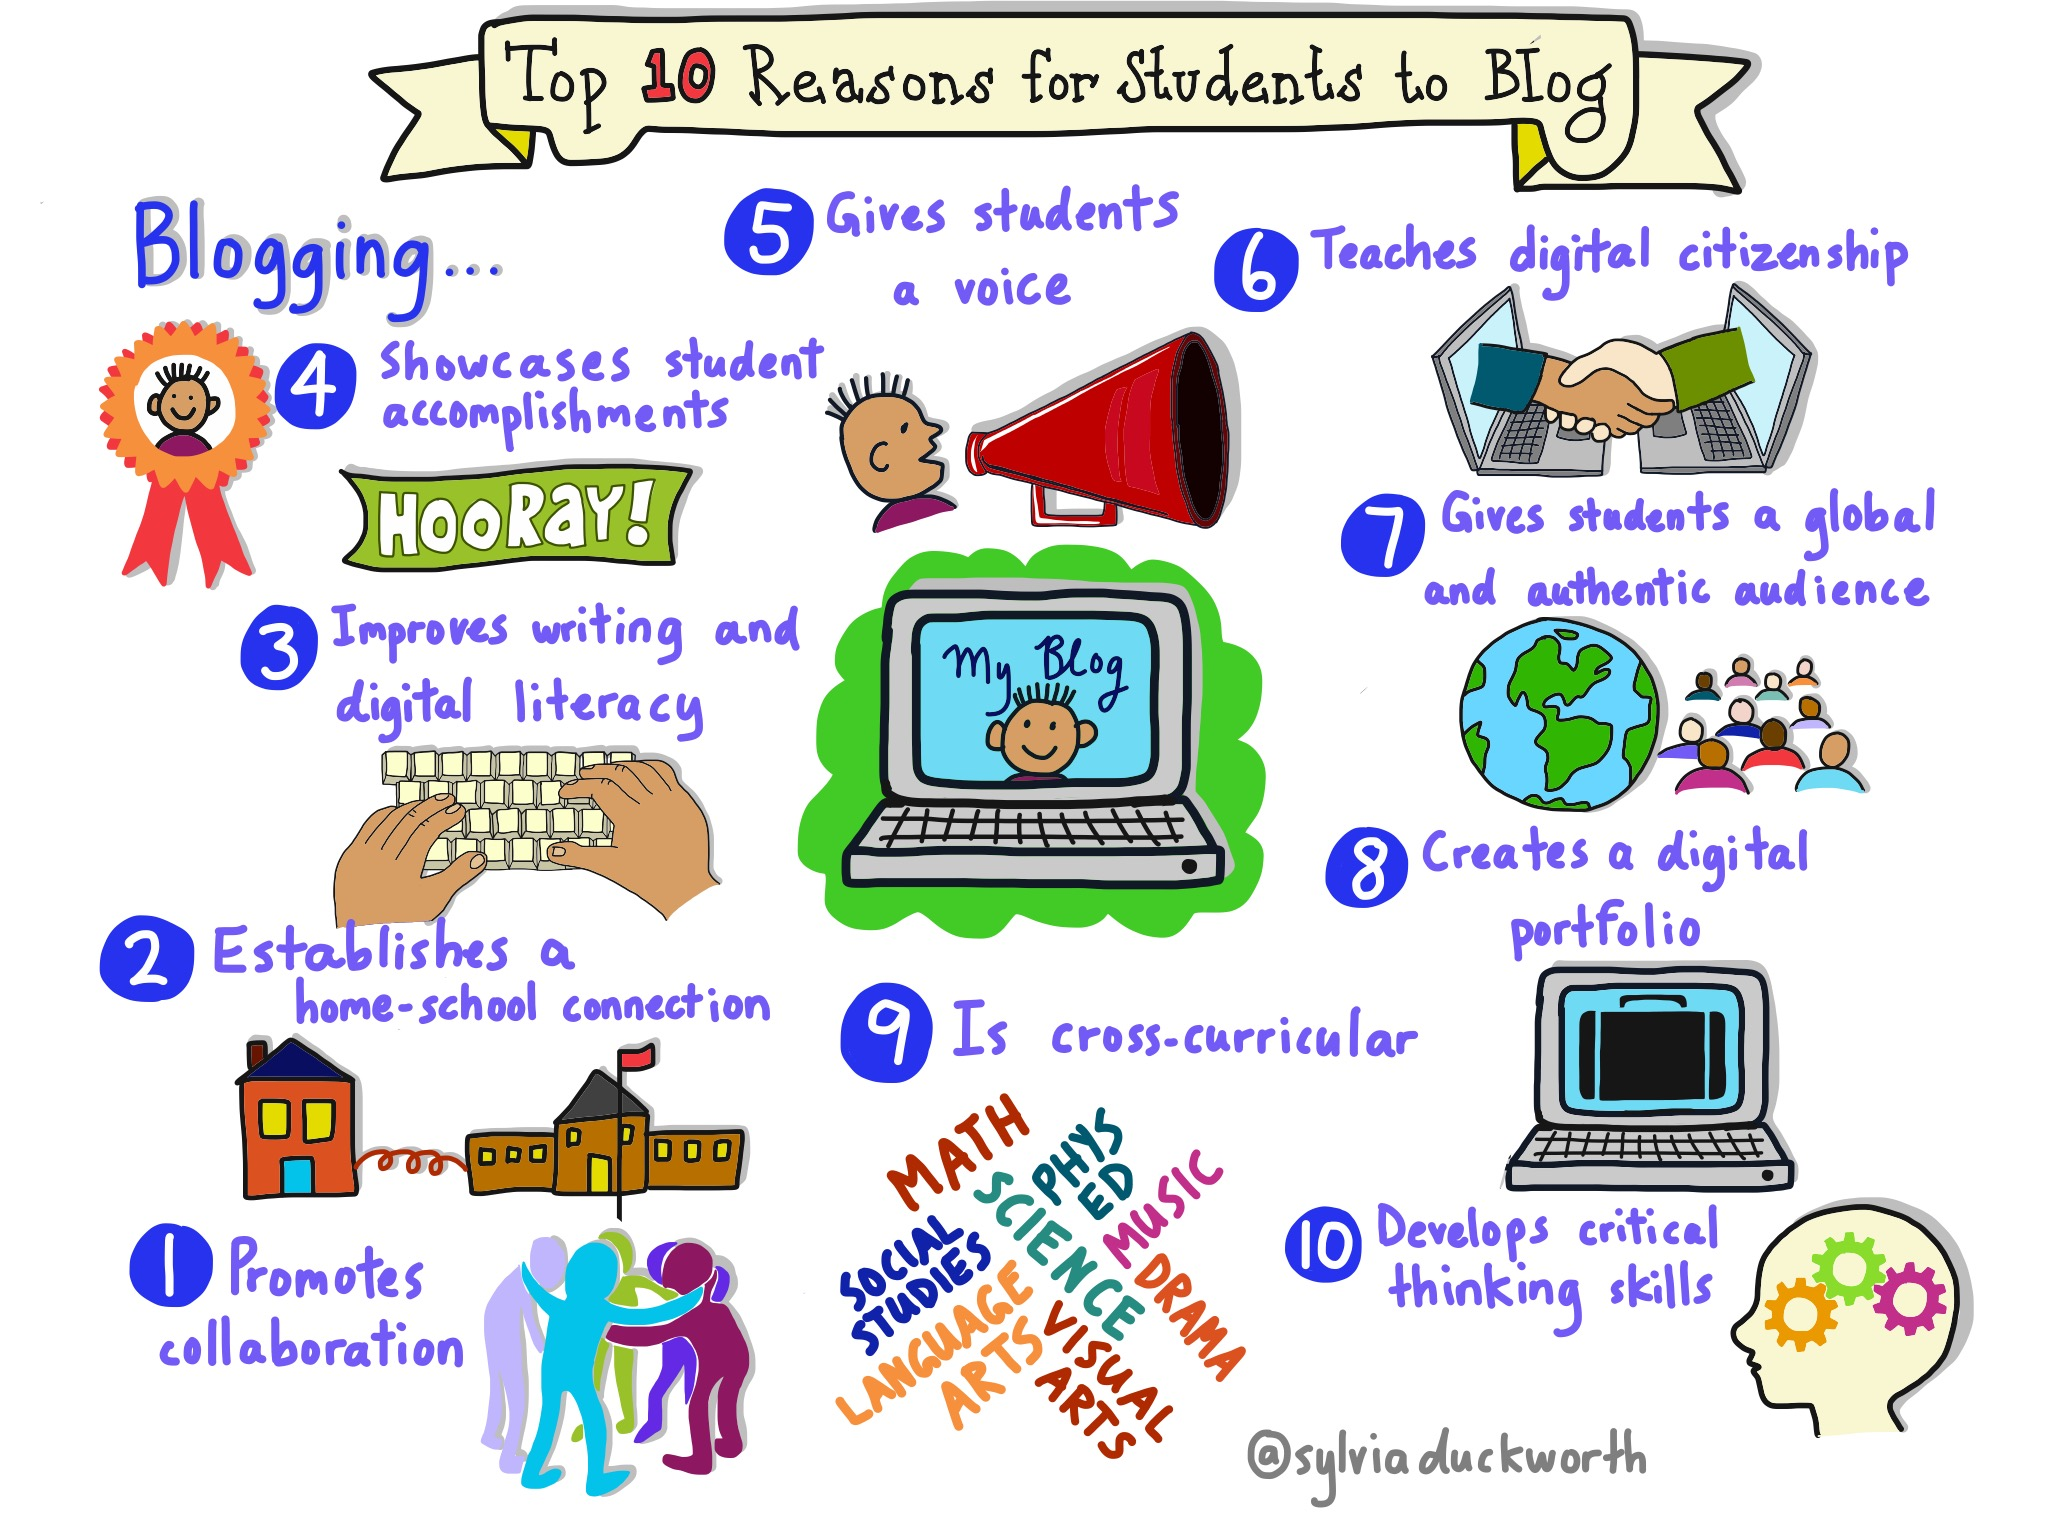 Top-10-Reasons-for-Students-to-Blog-Sylvia-Duckworth-CC-BY-flickr.jpg